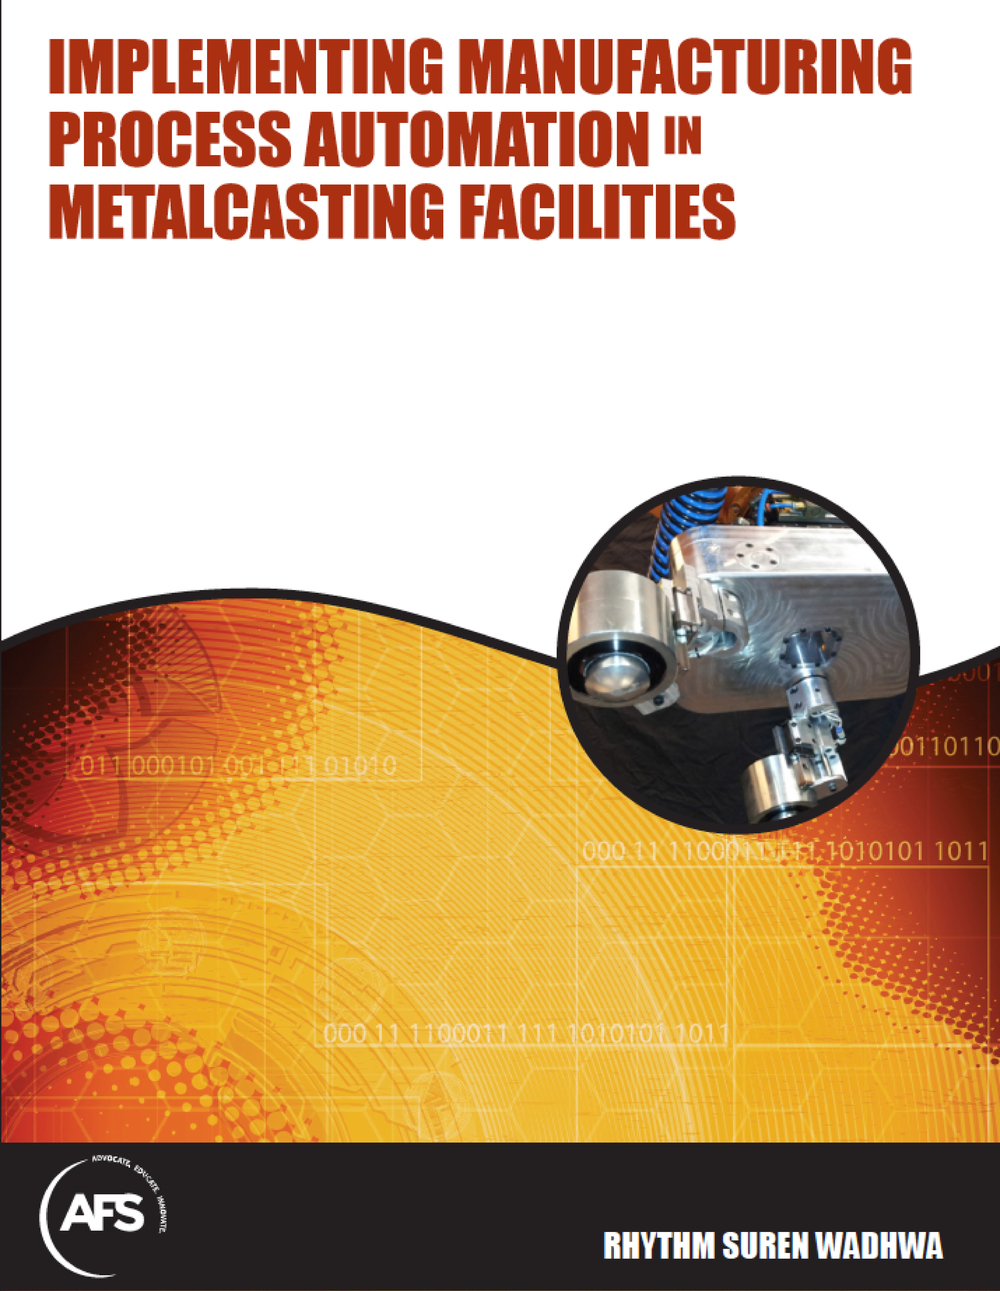 Automation in Metalcasting Facilities